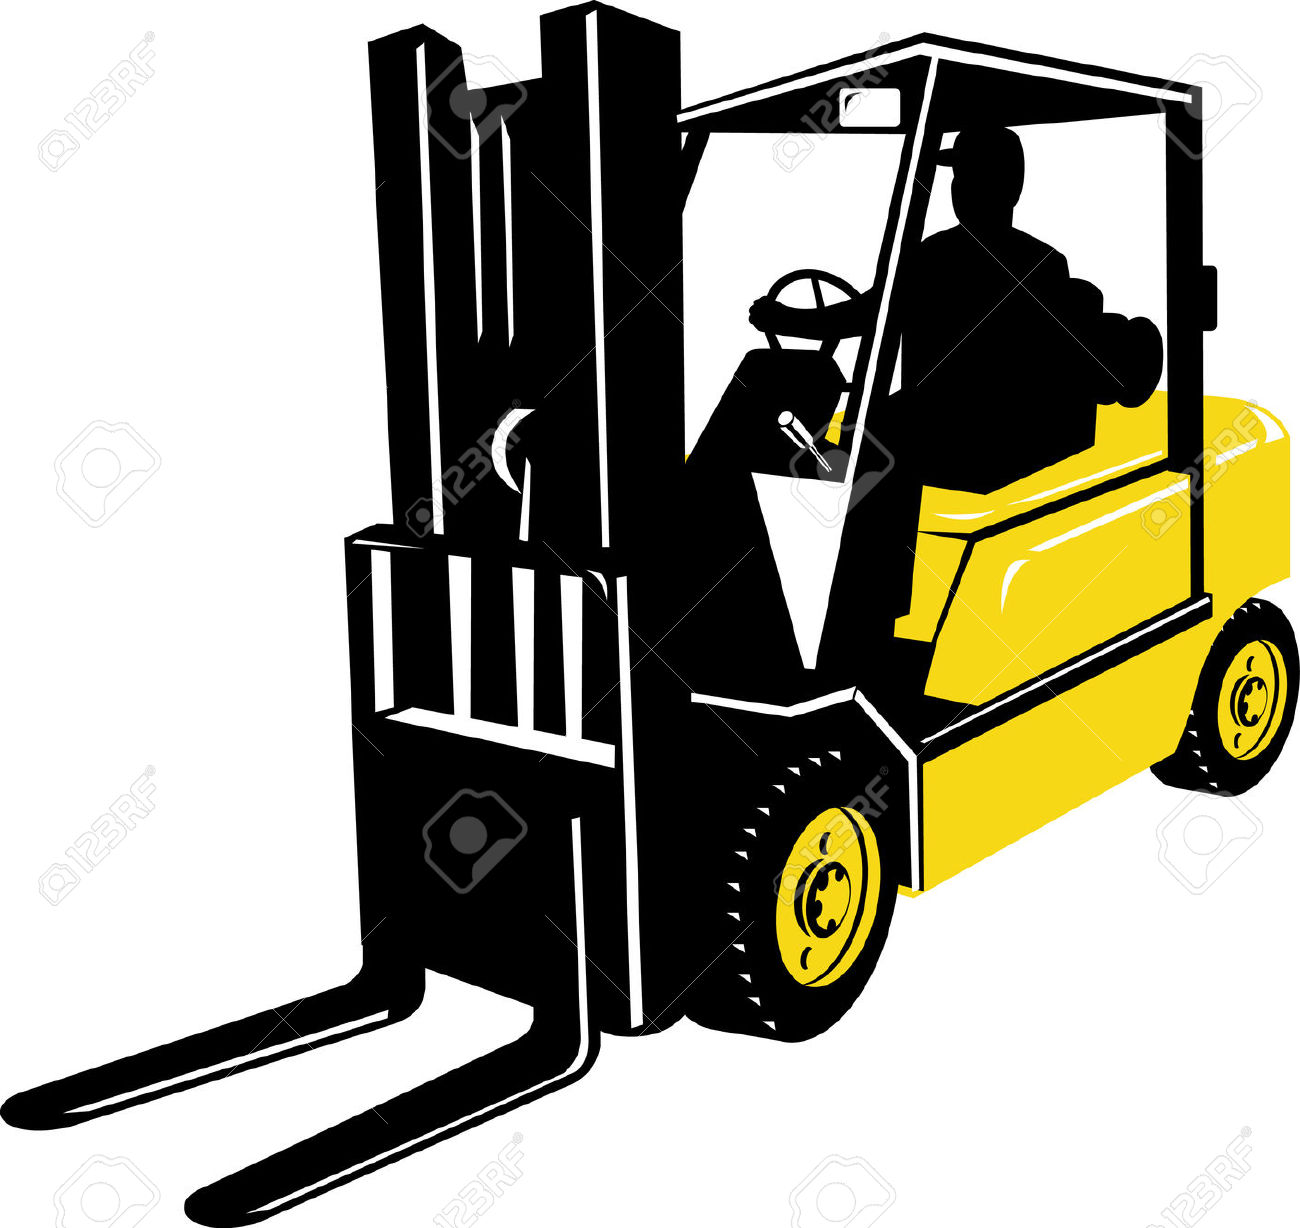 Counterbalance Forklift Truck.